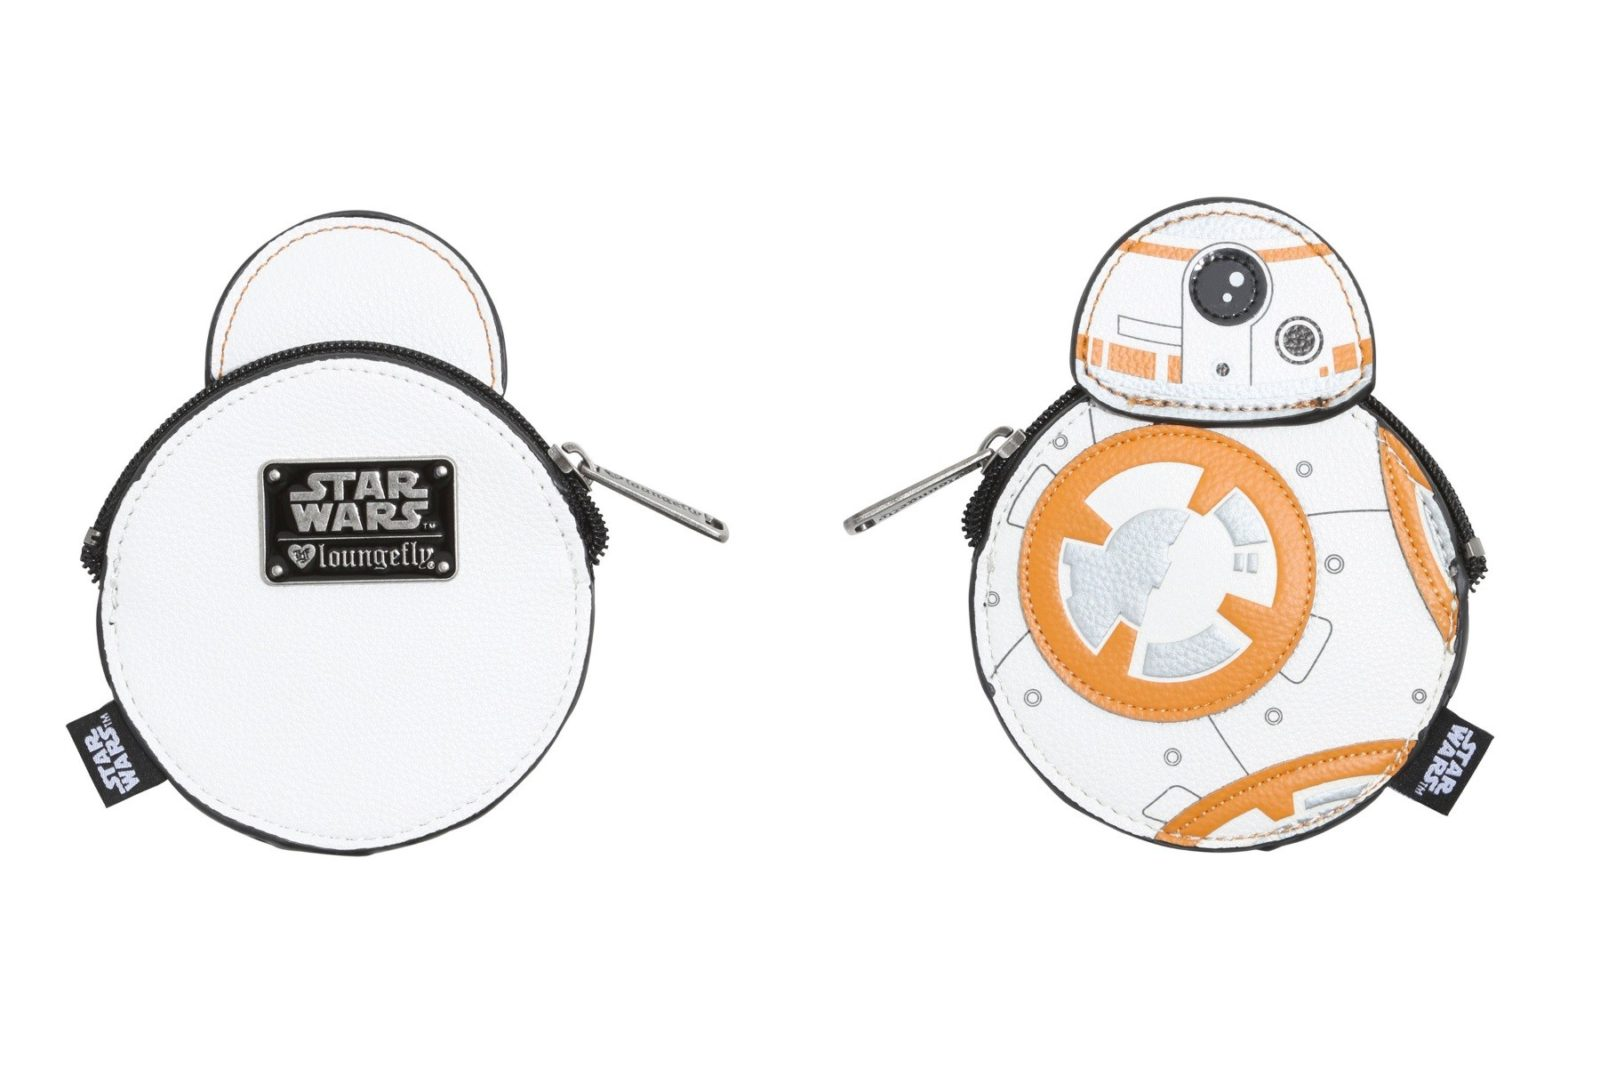 Loungefly BB-8 coin purse at Hot Topic